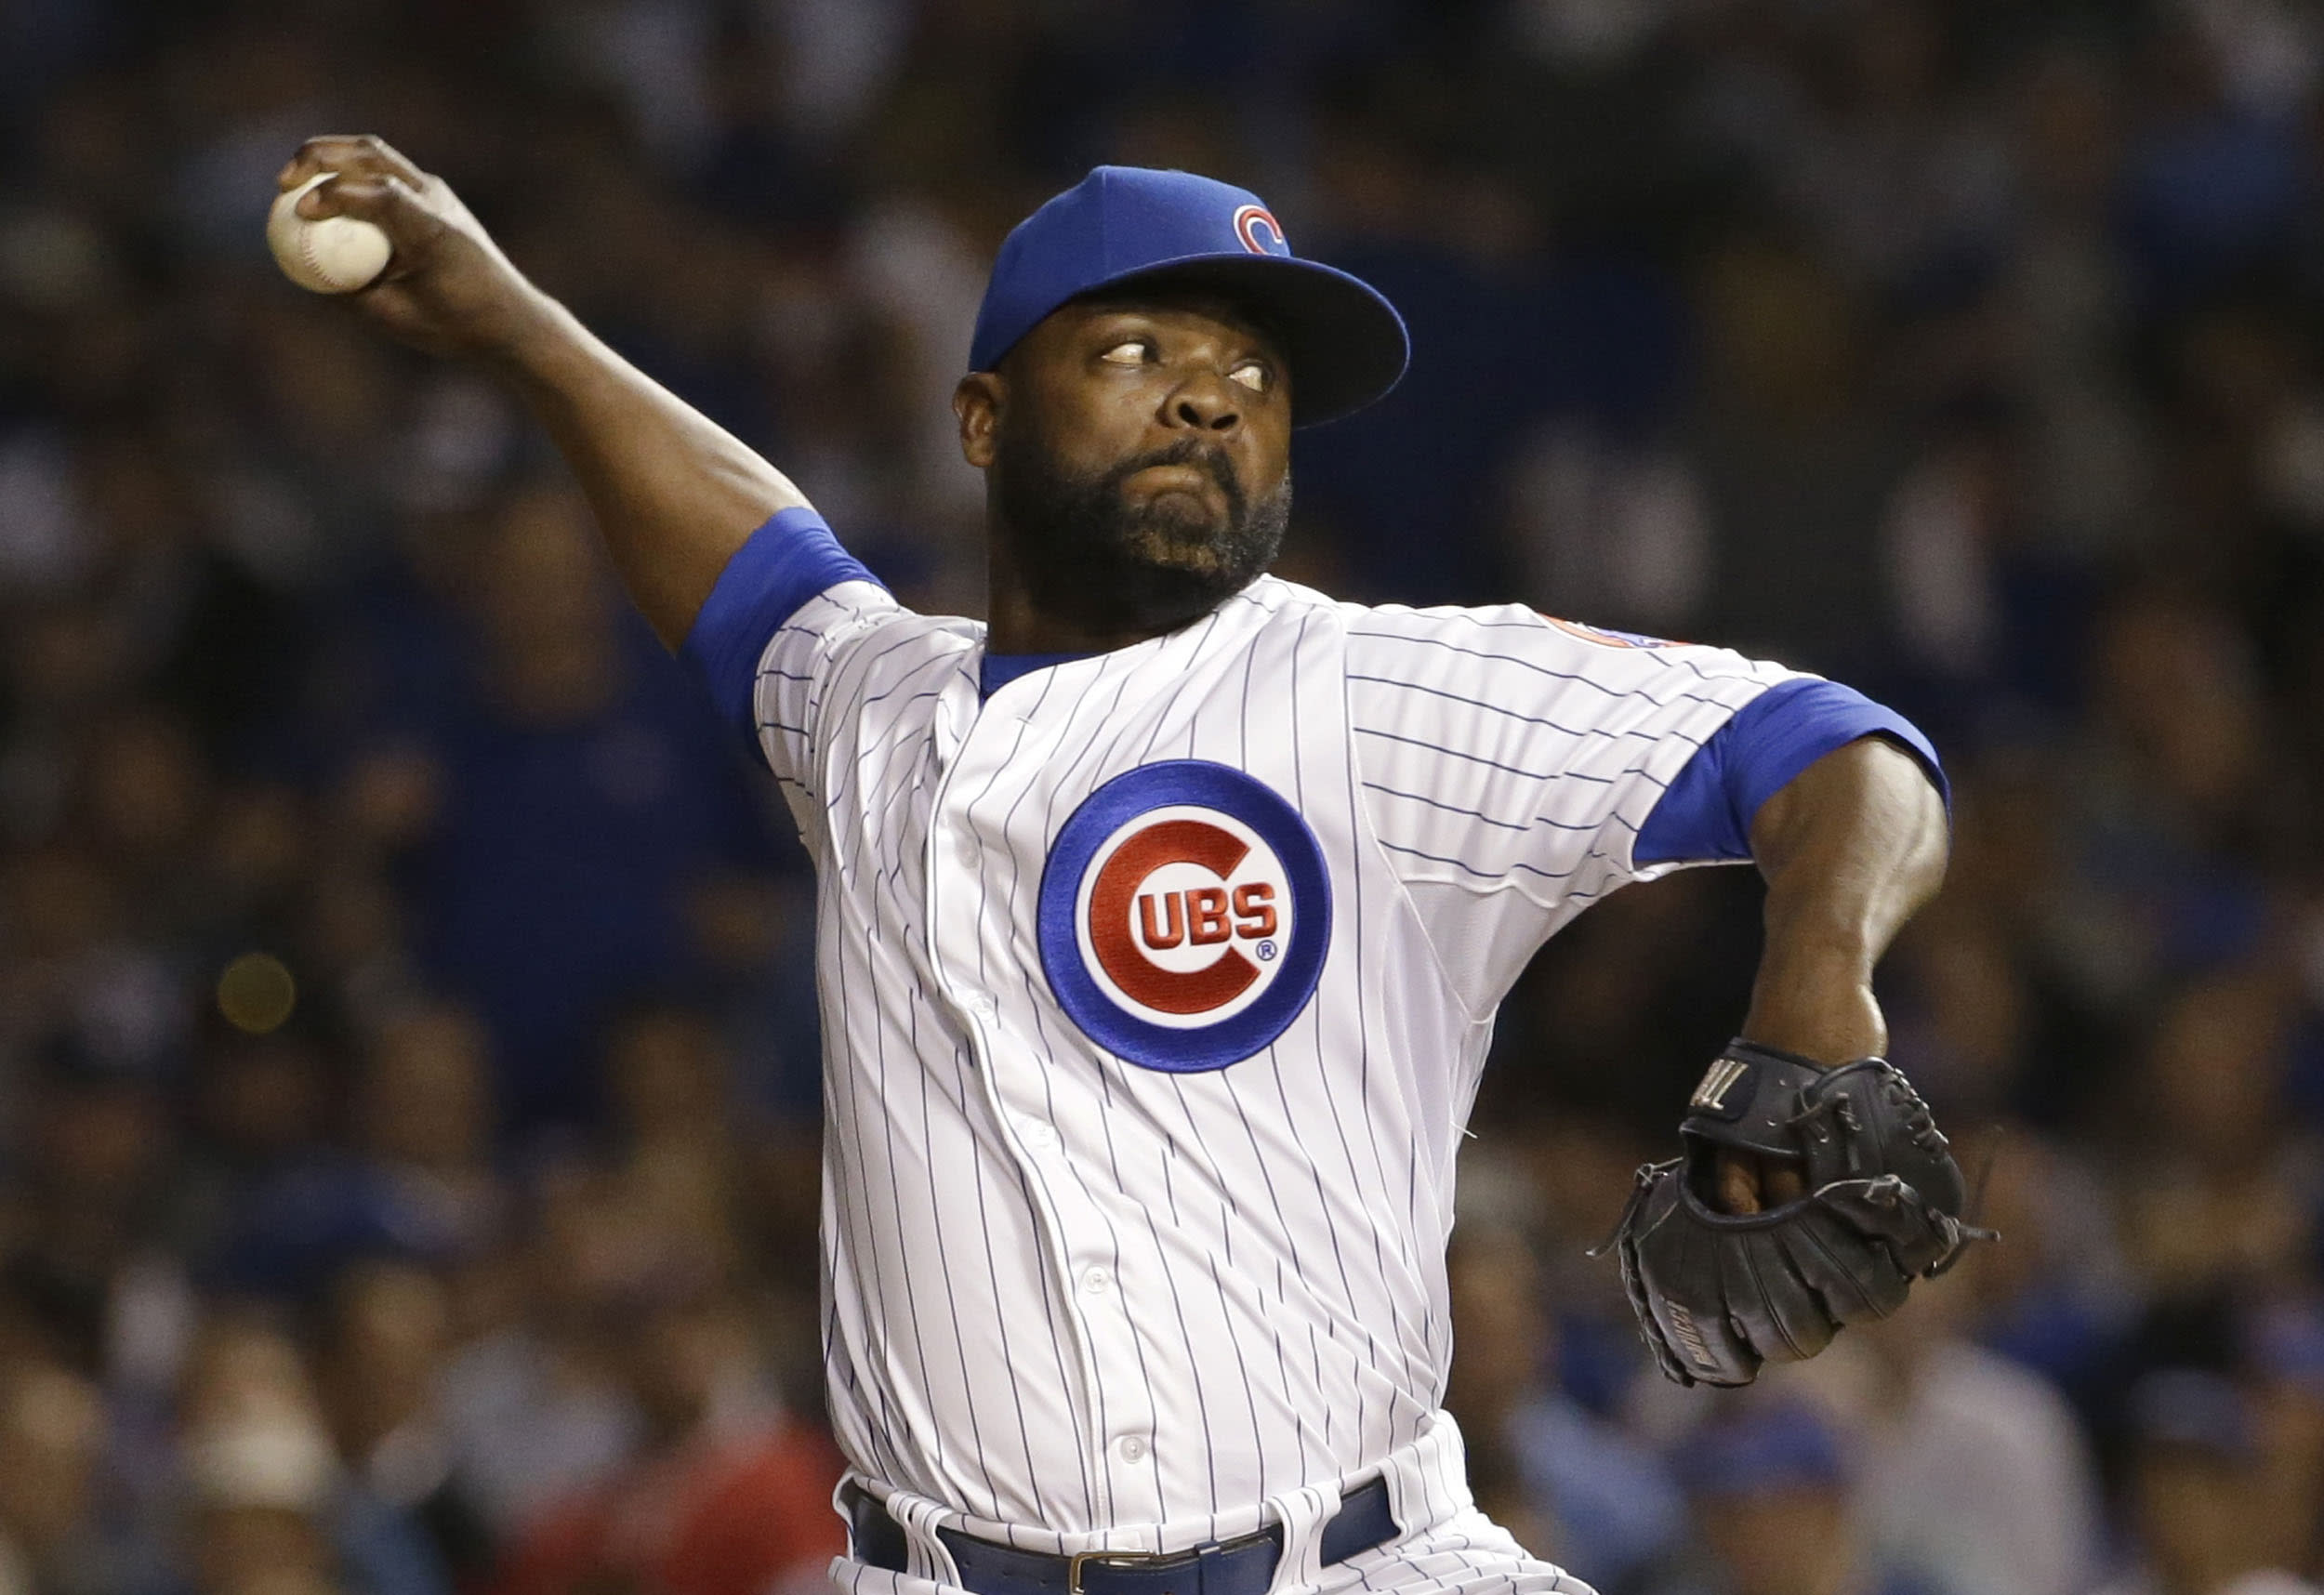 Fernando Rodney and Padres finalize $2 million, 1-year deal